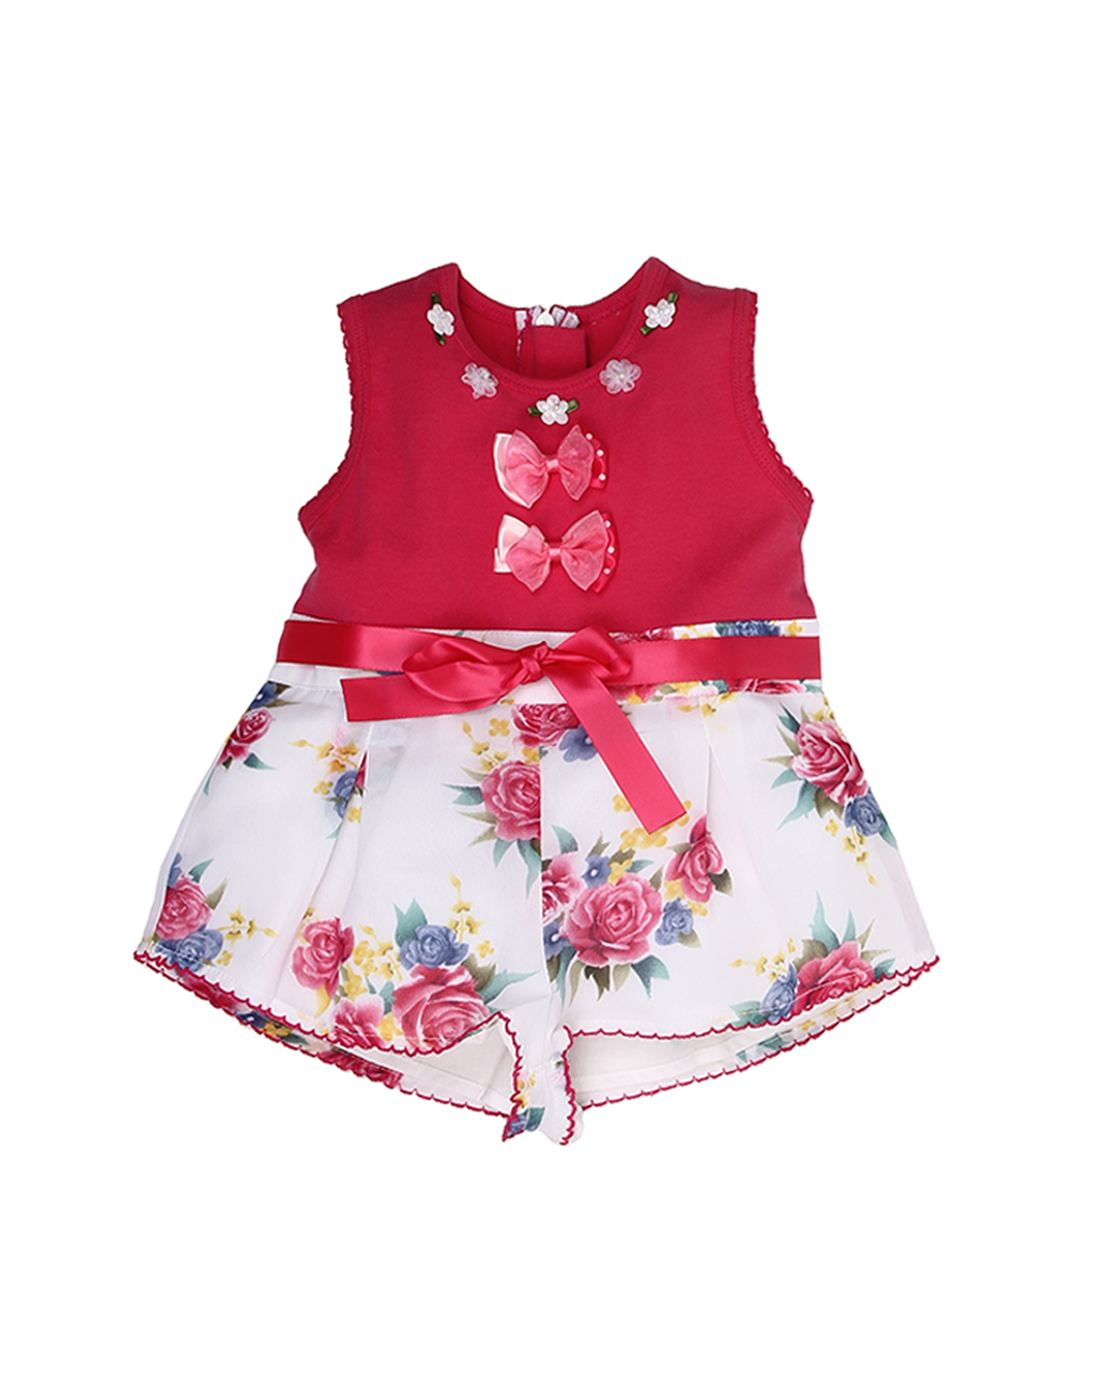 K.C.O 89 Baby Girls Party Printed Sleeveless Jump Suit